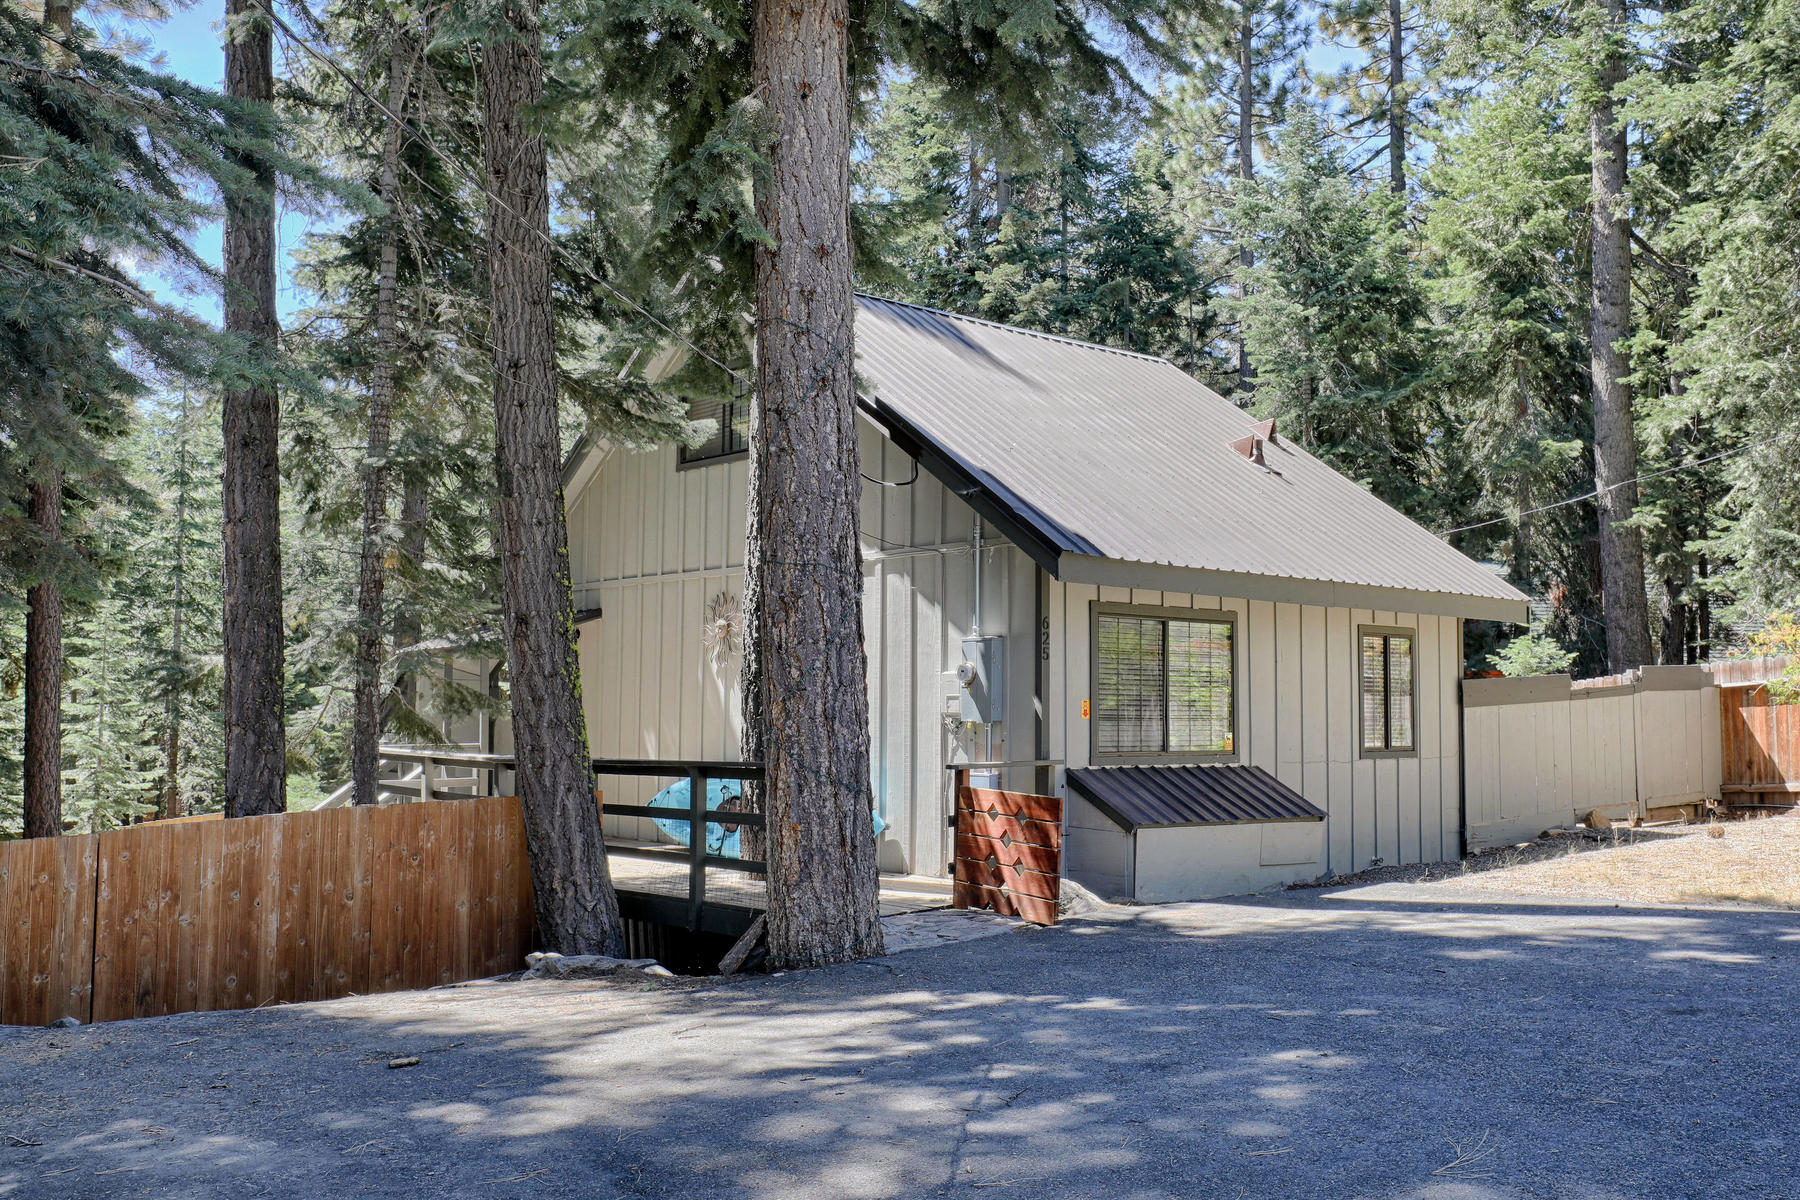 Additional photo for property listing at 625 Northridge Drive, Carnelian Bay CA 96140 625 Northridge Drive Carnelian Bay, California 96140 United States